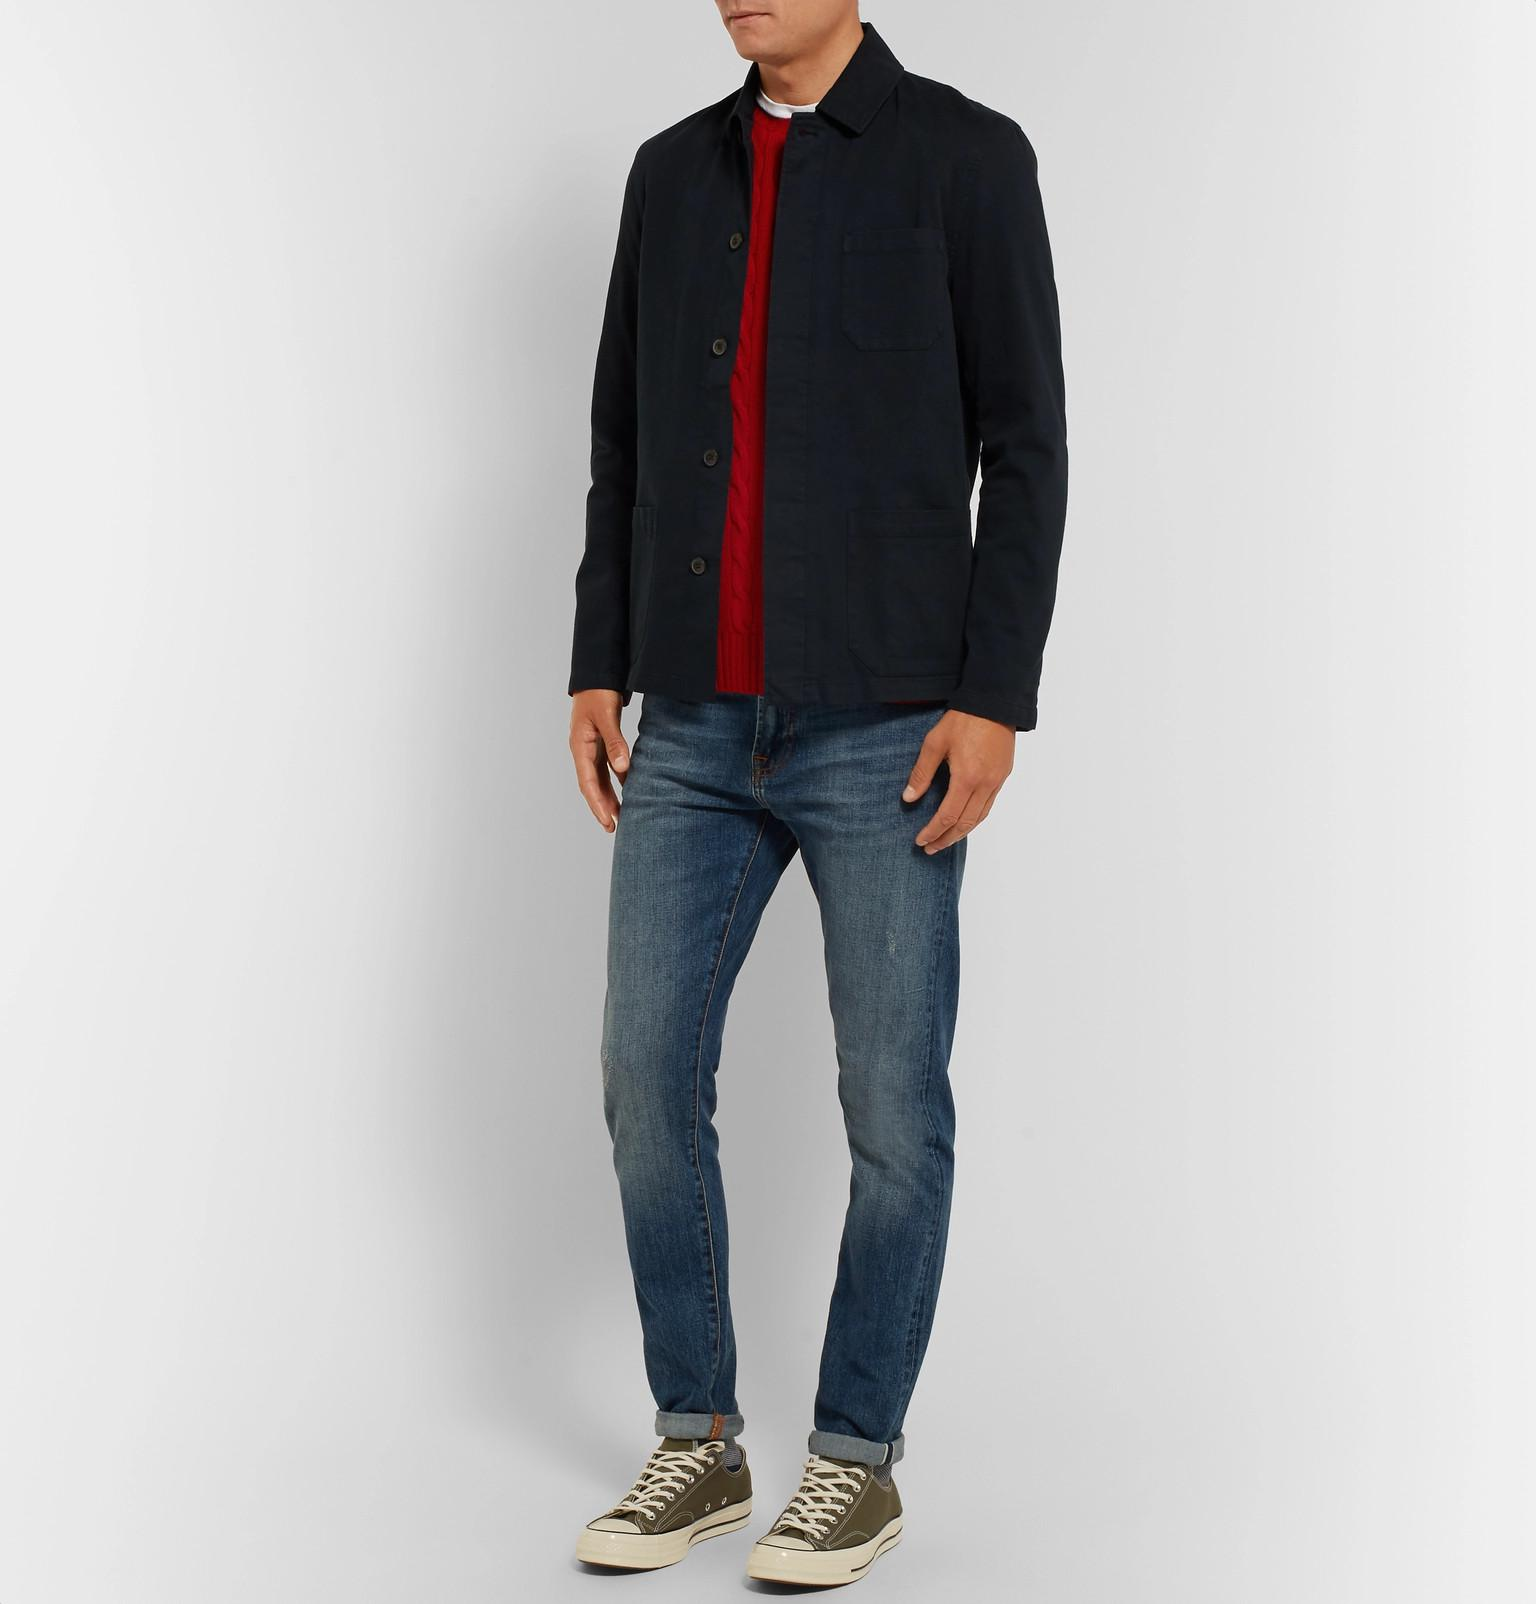 Merino Blend Polo Sweater Cable Cashmere Fullscreen View Knit For Ralph Red Wool Lauren And ZqXvTqWzr